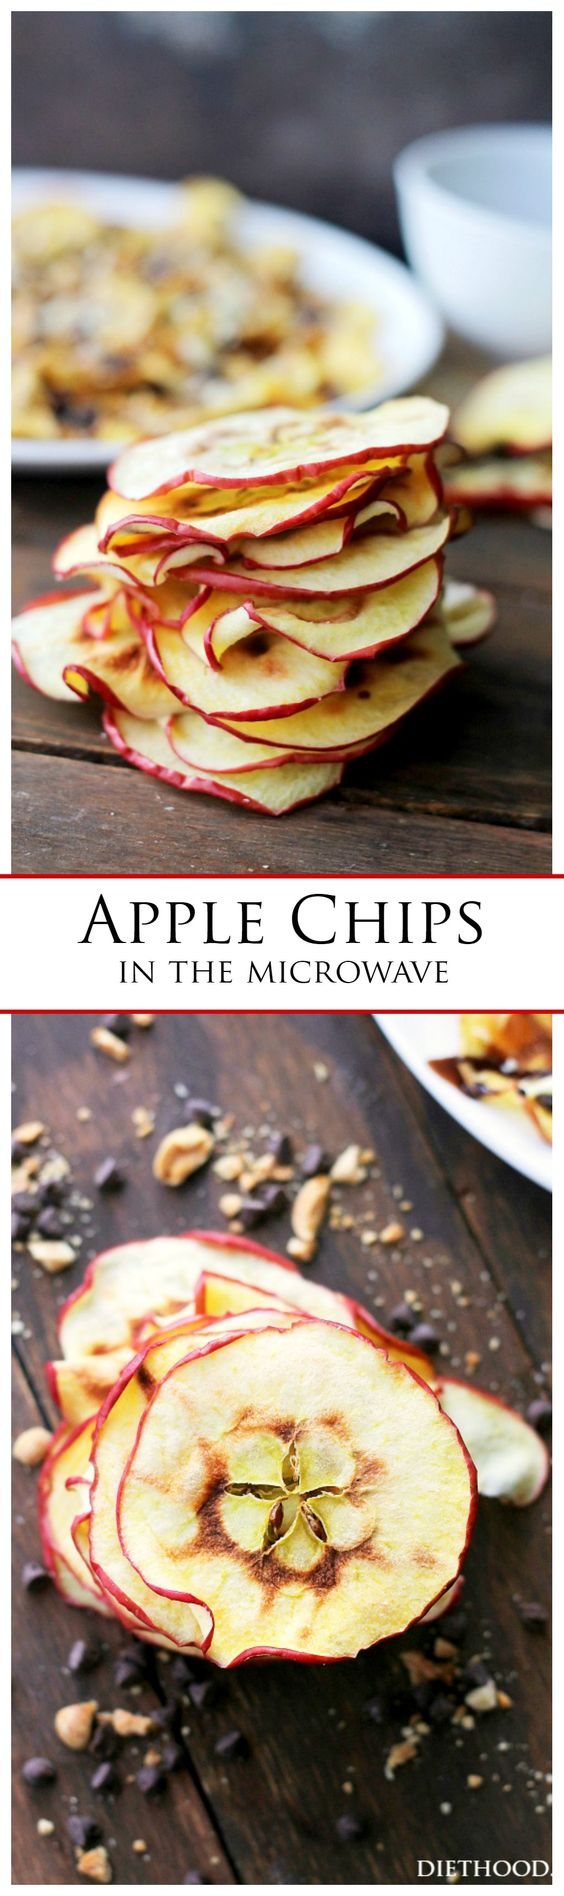 Apple Chips - Chips de manzana al microondas. #HealthyRecipes